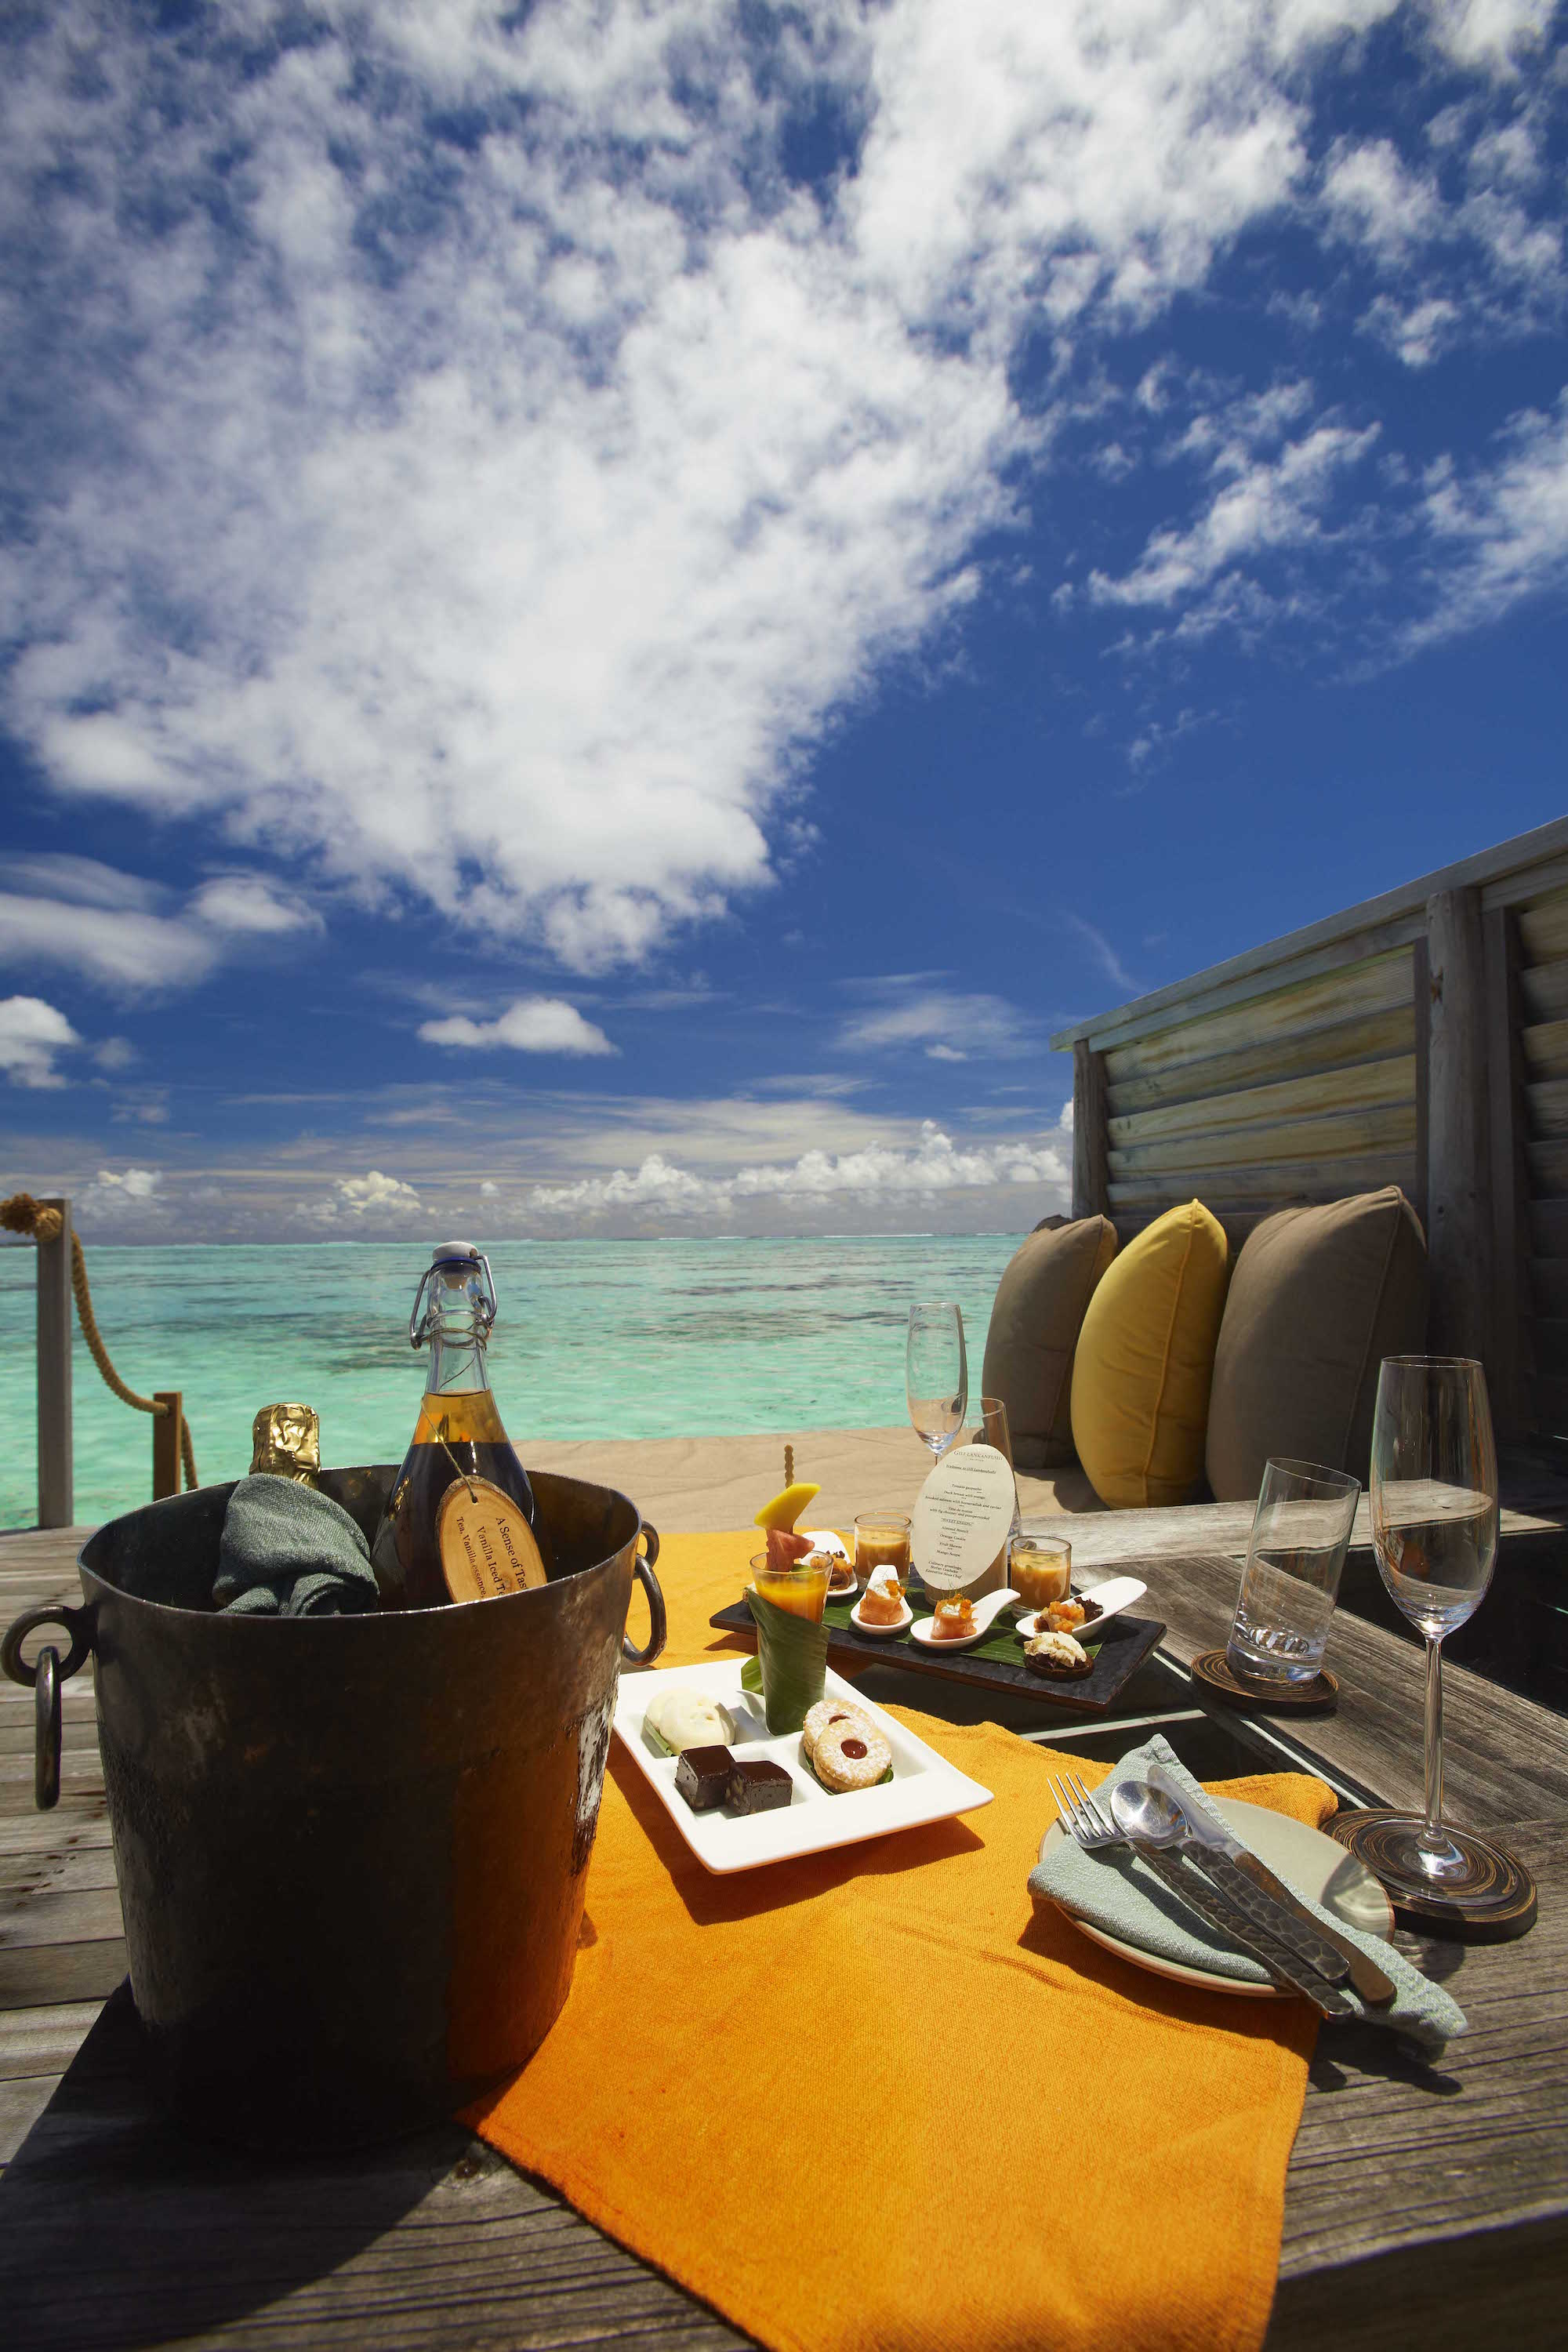 Gili Lankanfushi Resort Maldives - Dining on the deck